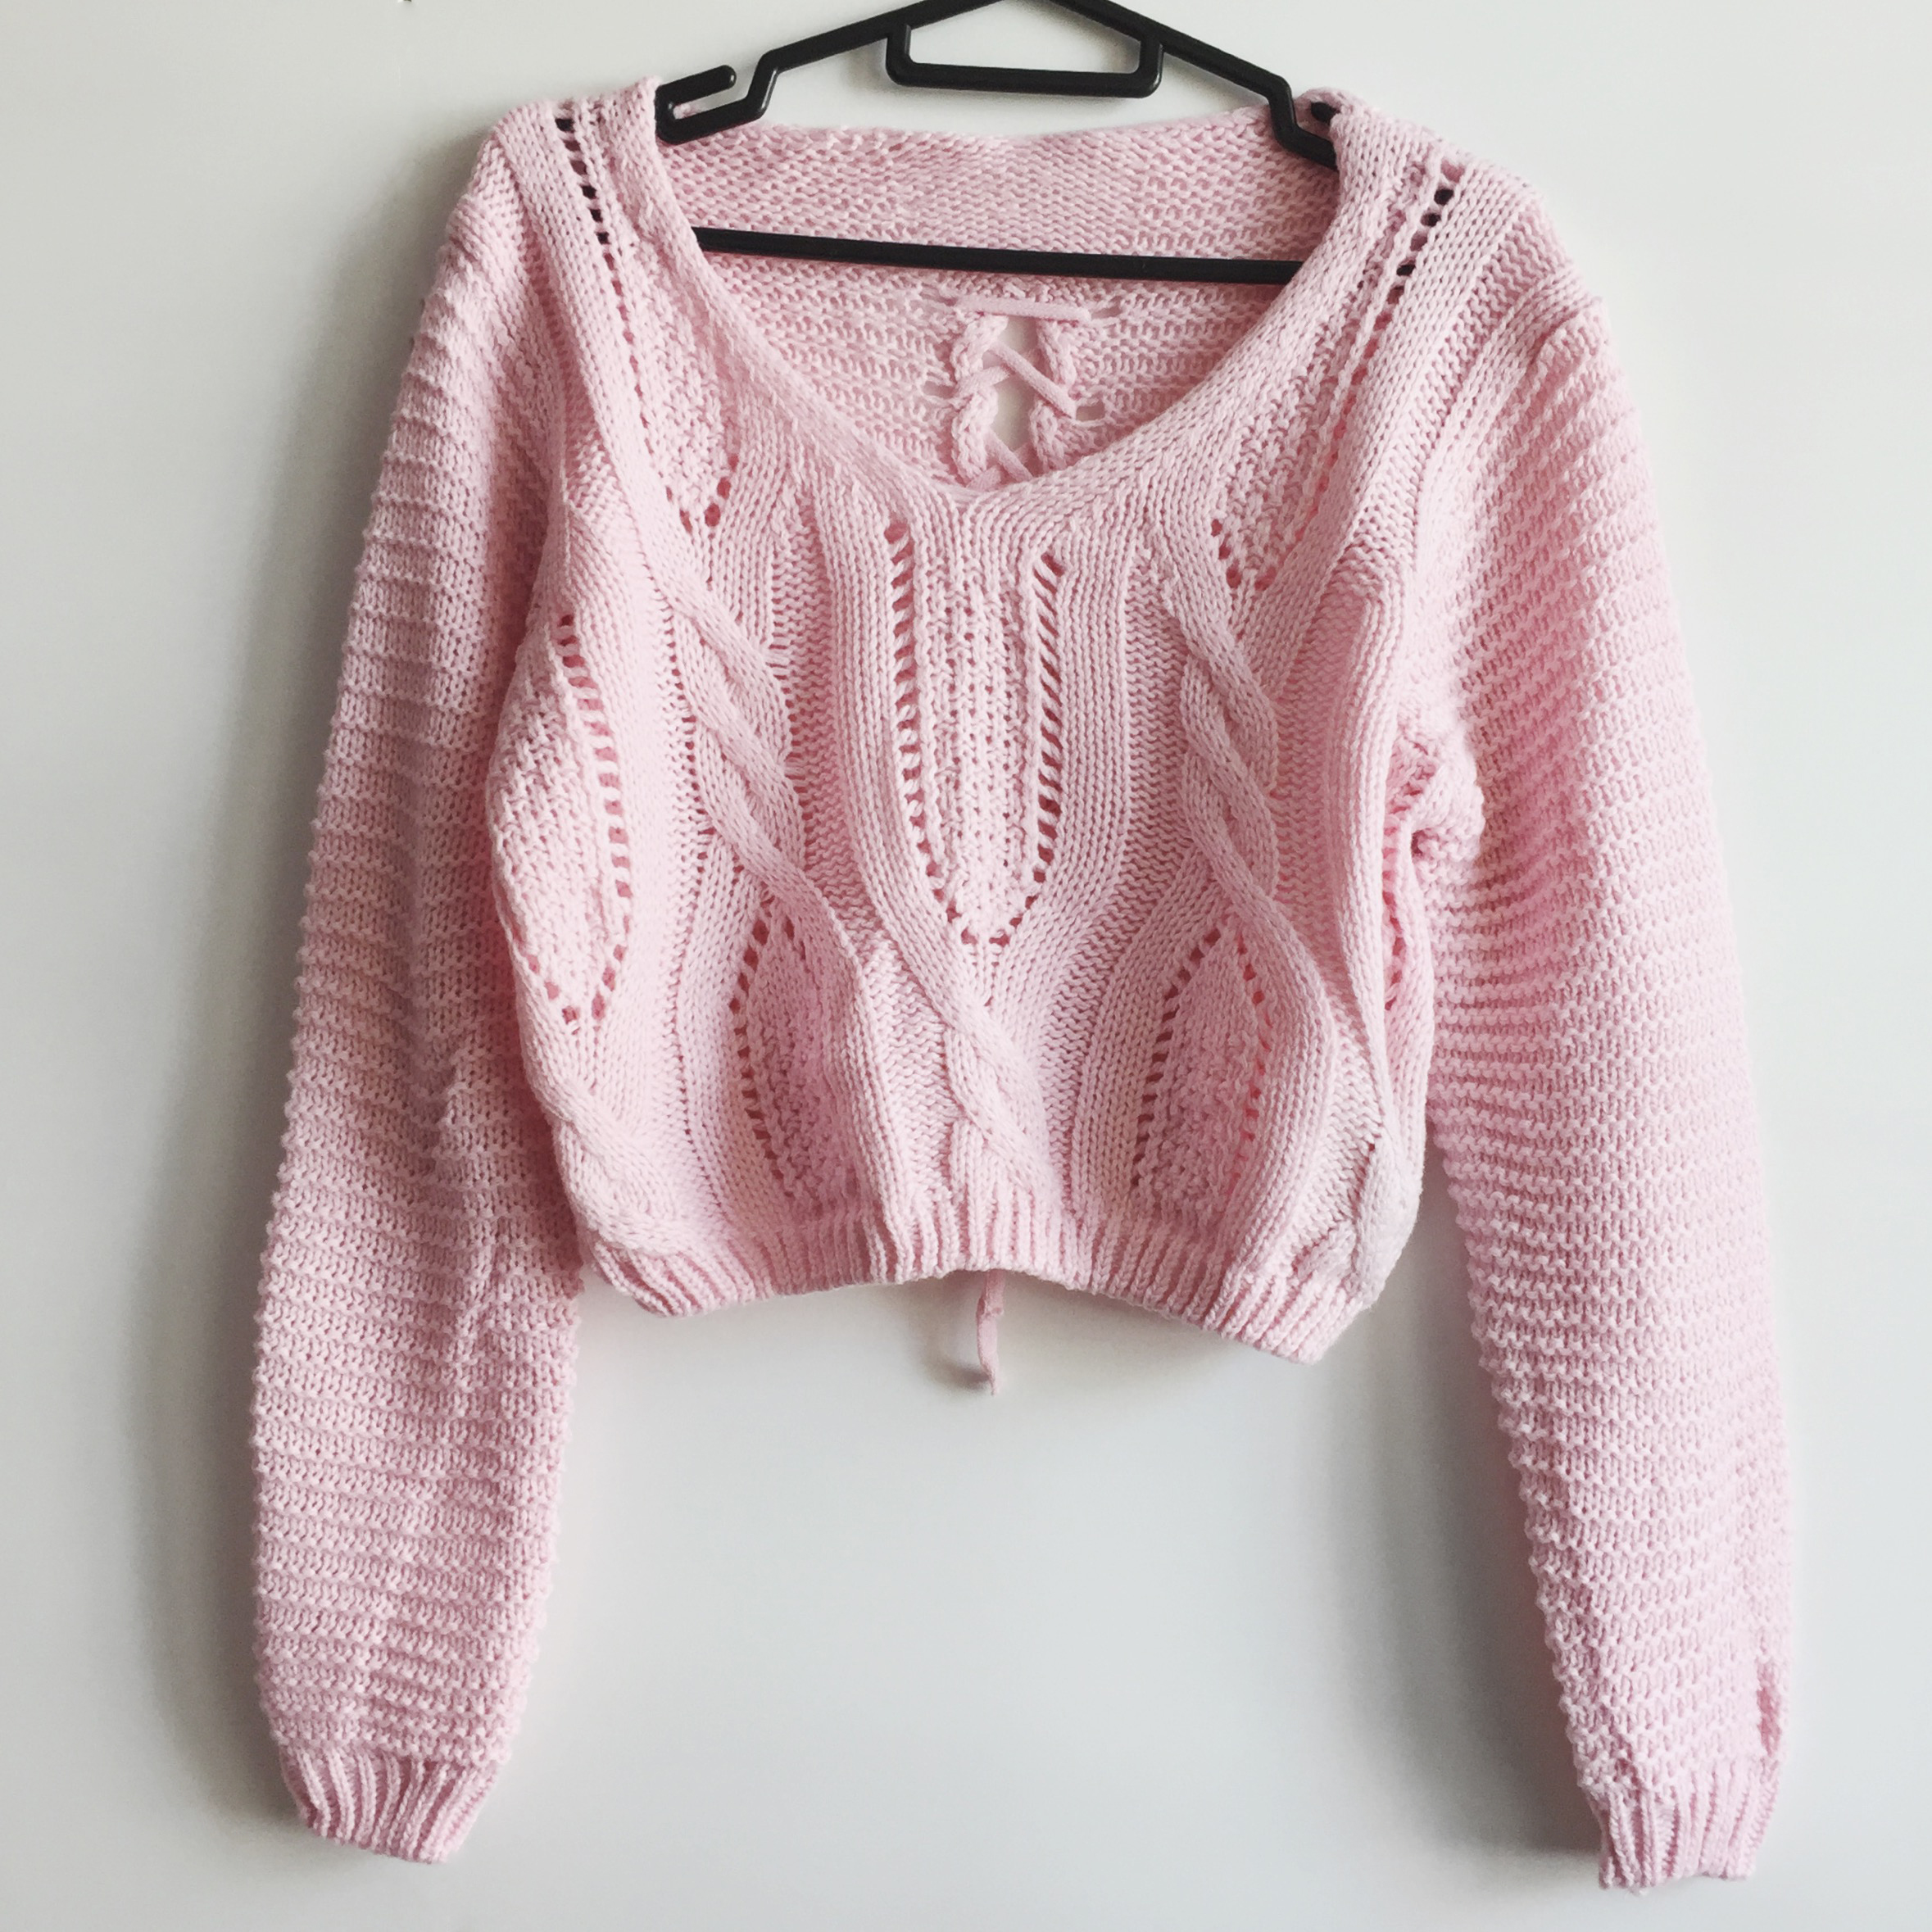 5f16f70721 Lace Up Back Cropped Knit Sweater (Pink) · Megoosta Fashion · Free ...